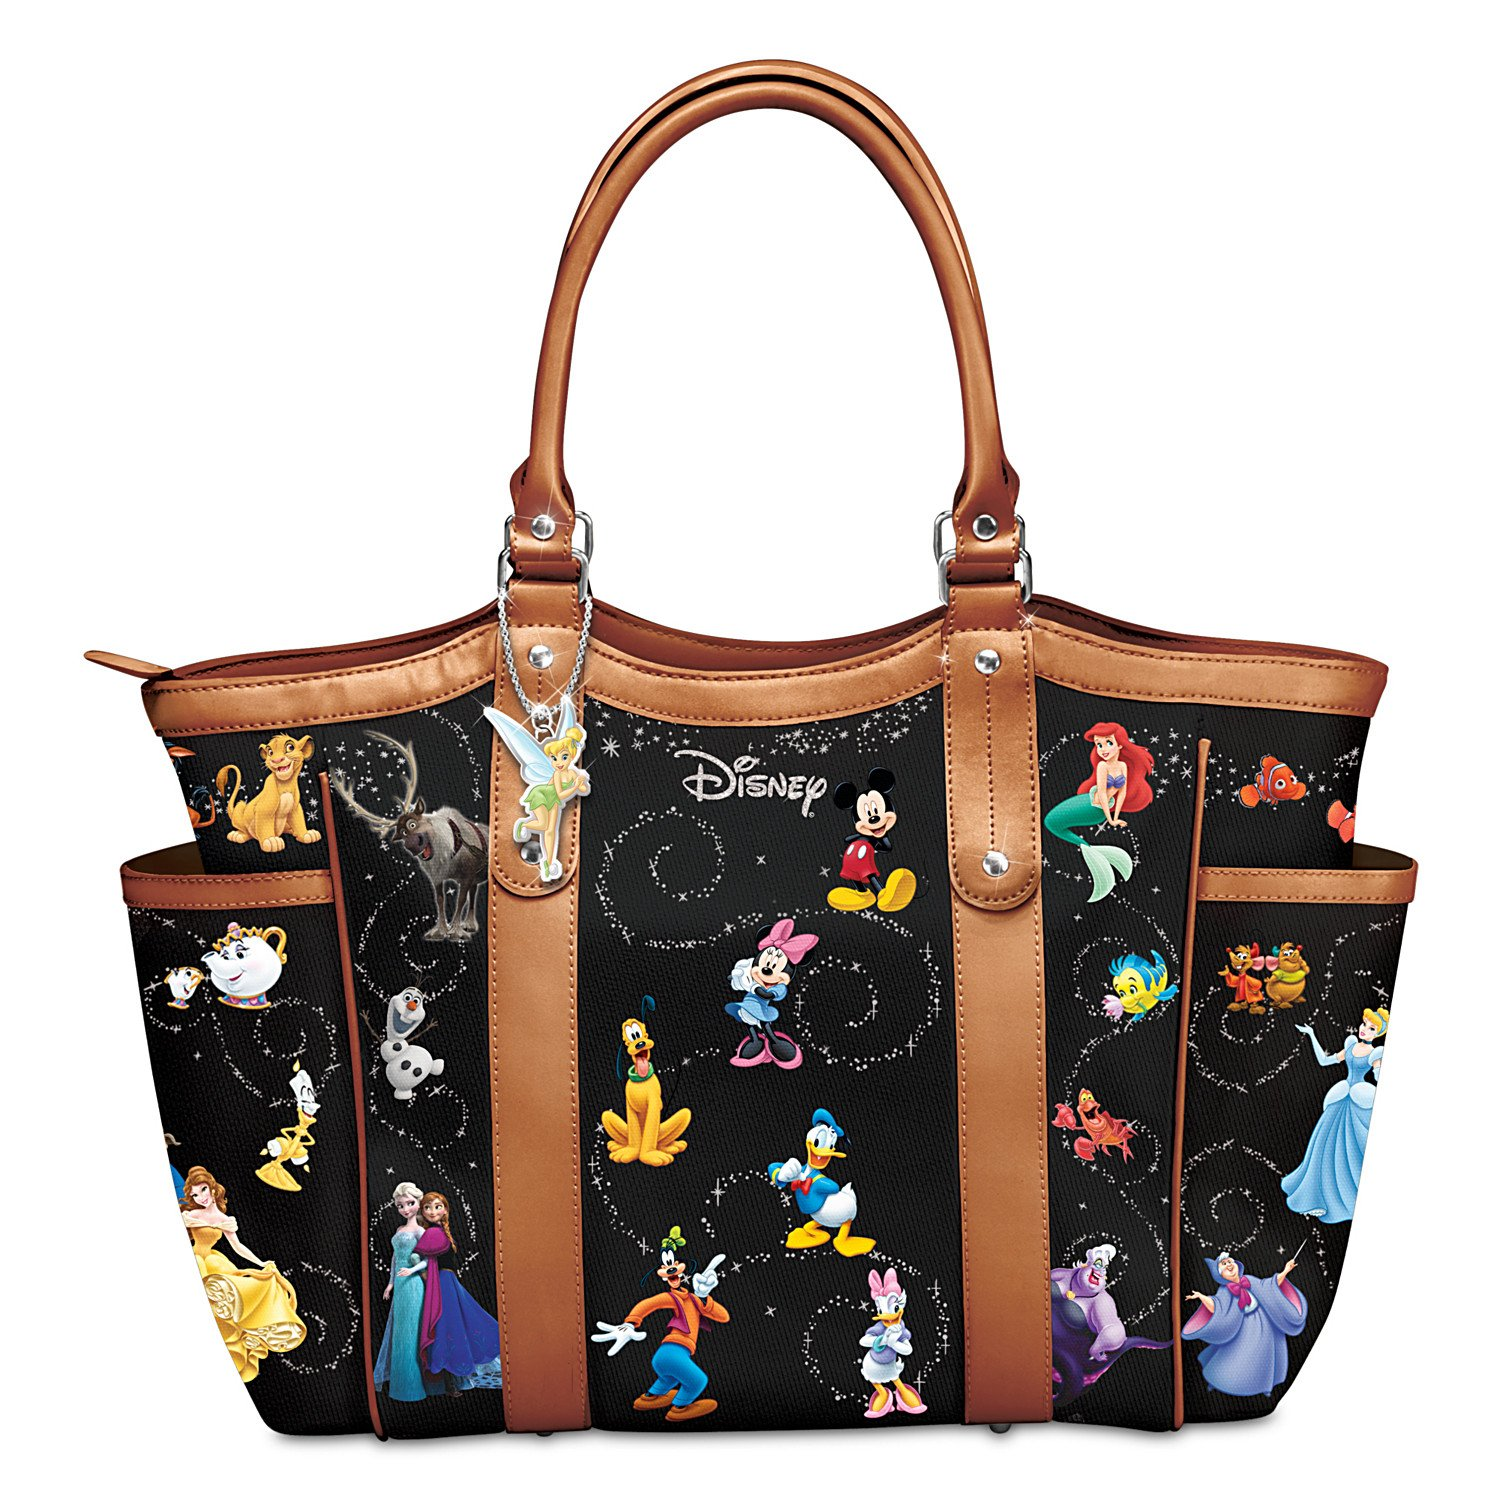 Disney Handbag With Character Art And Tinker Bell Charm by The Bradford Exchange